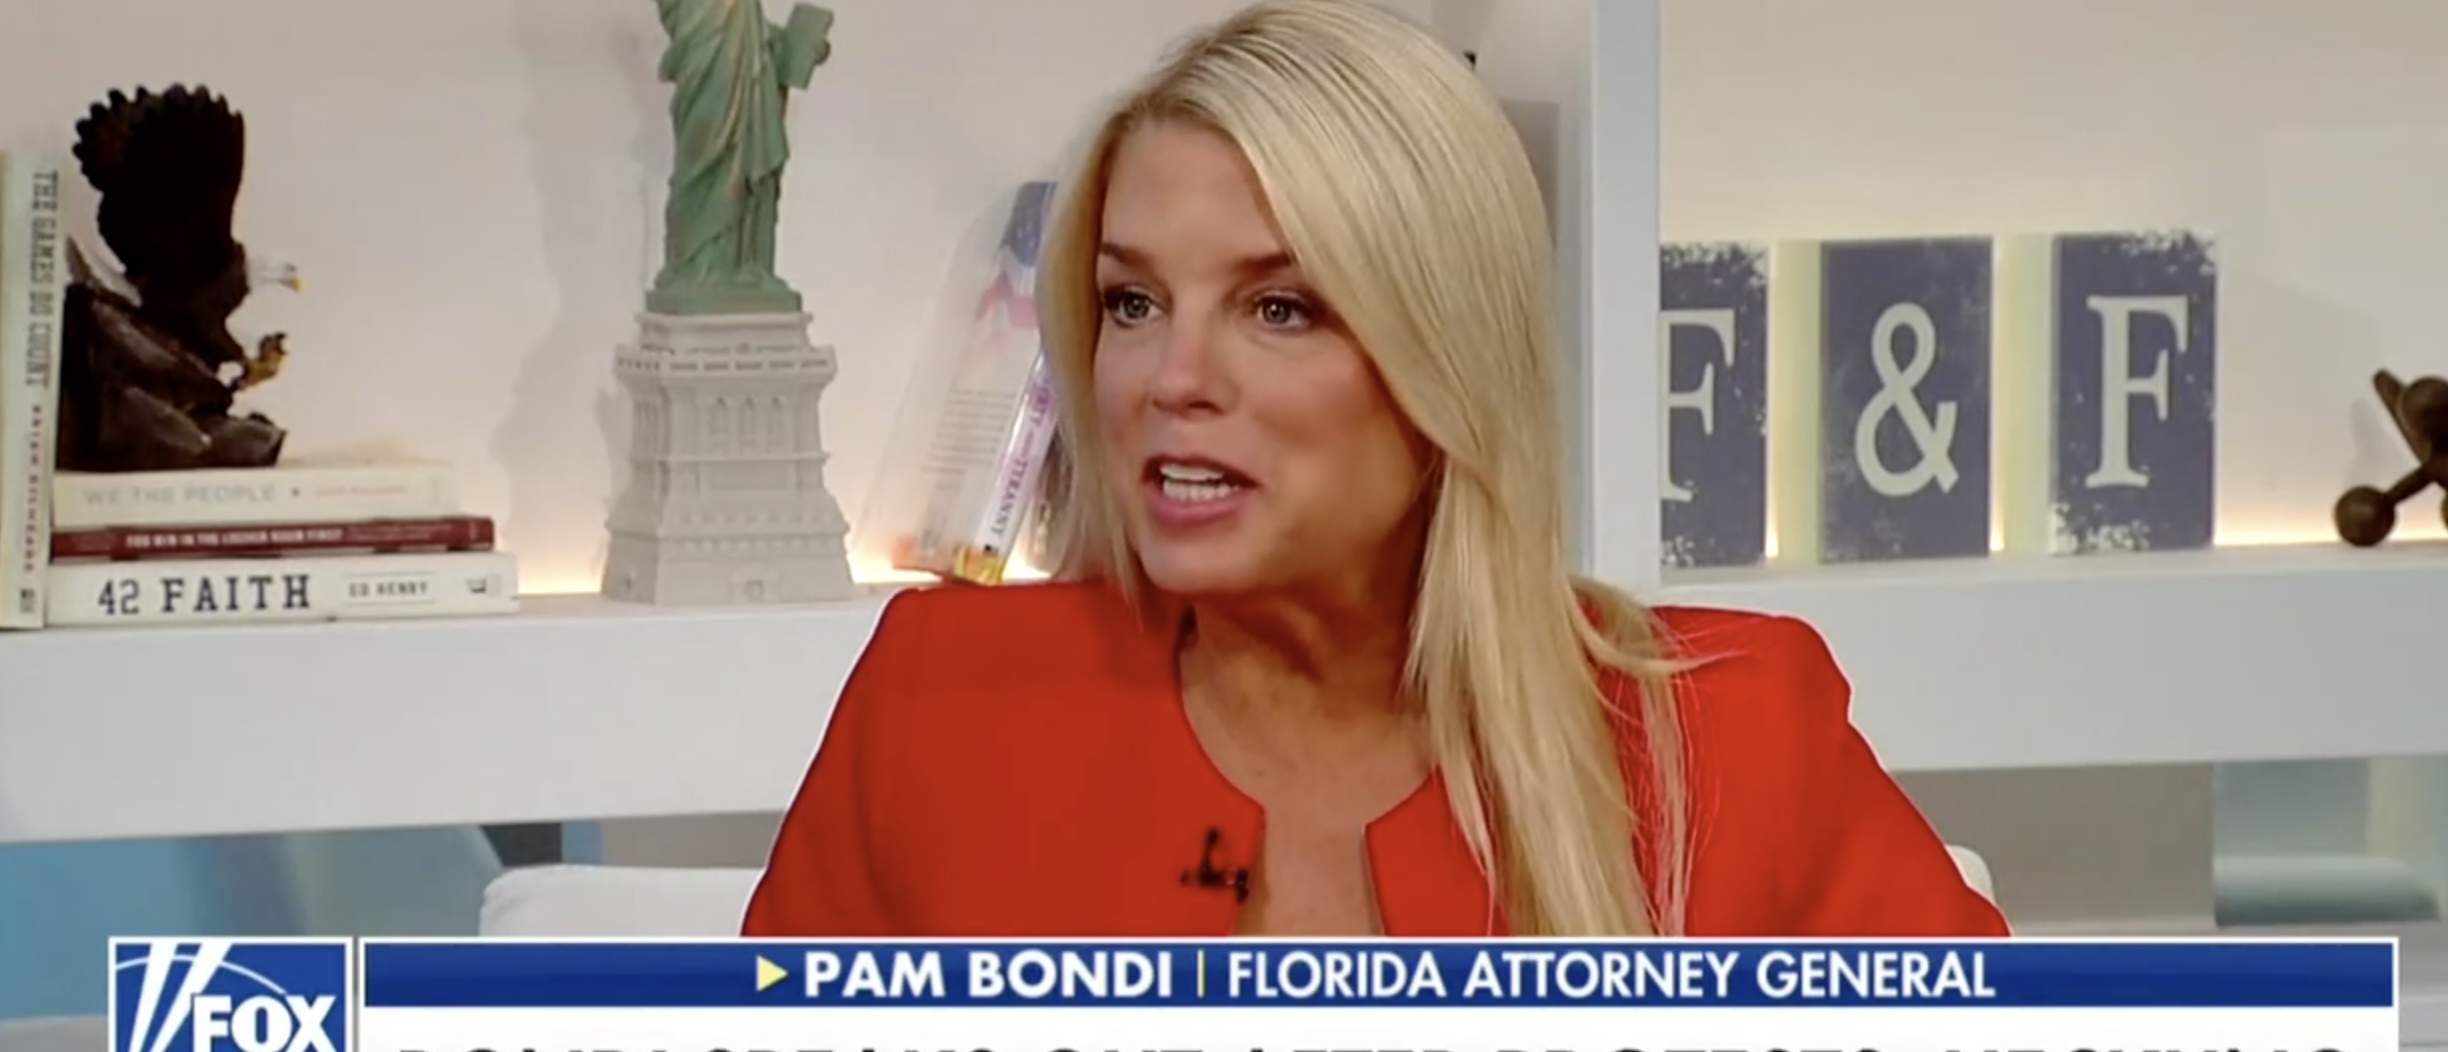 Florida AG Pam Bondi was on Fox and Friends to discuss getting harassed (Fox News 6/25/2018)